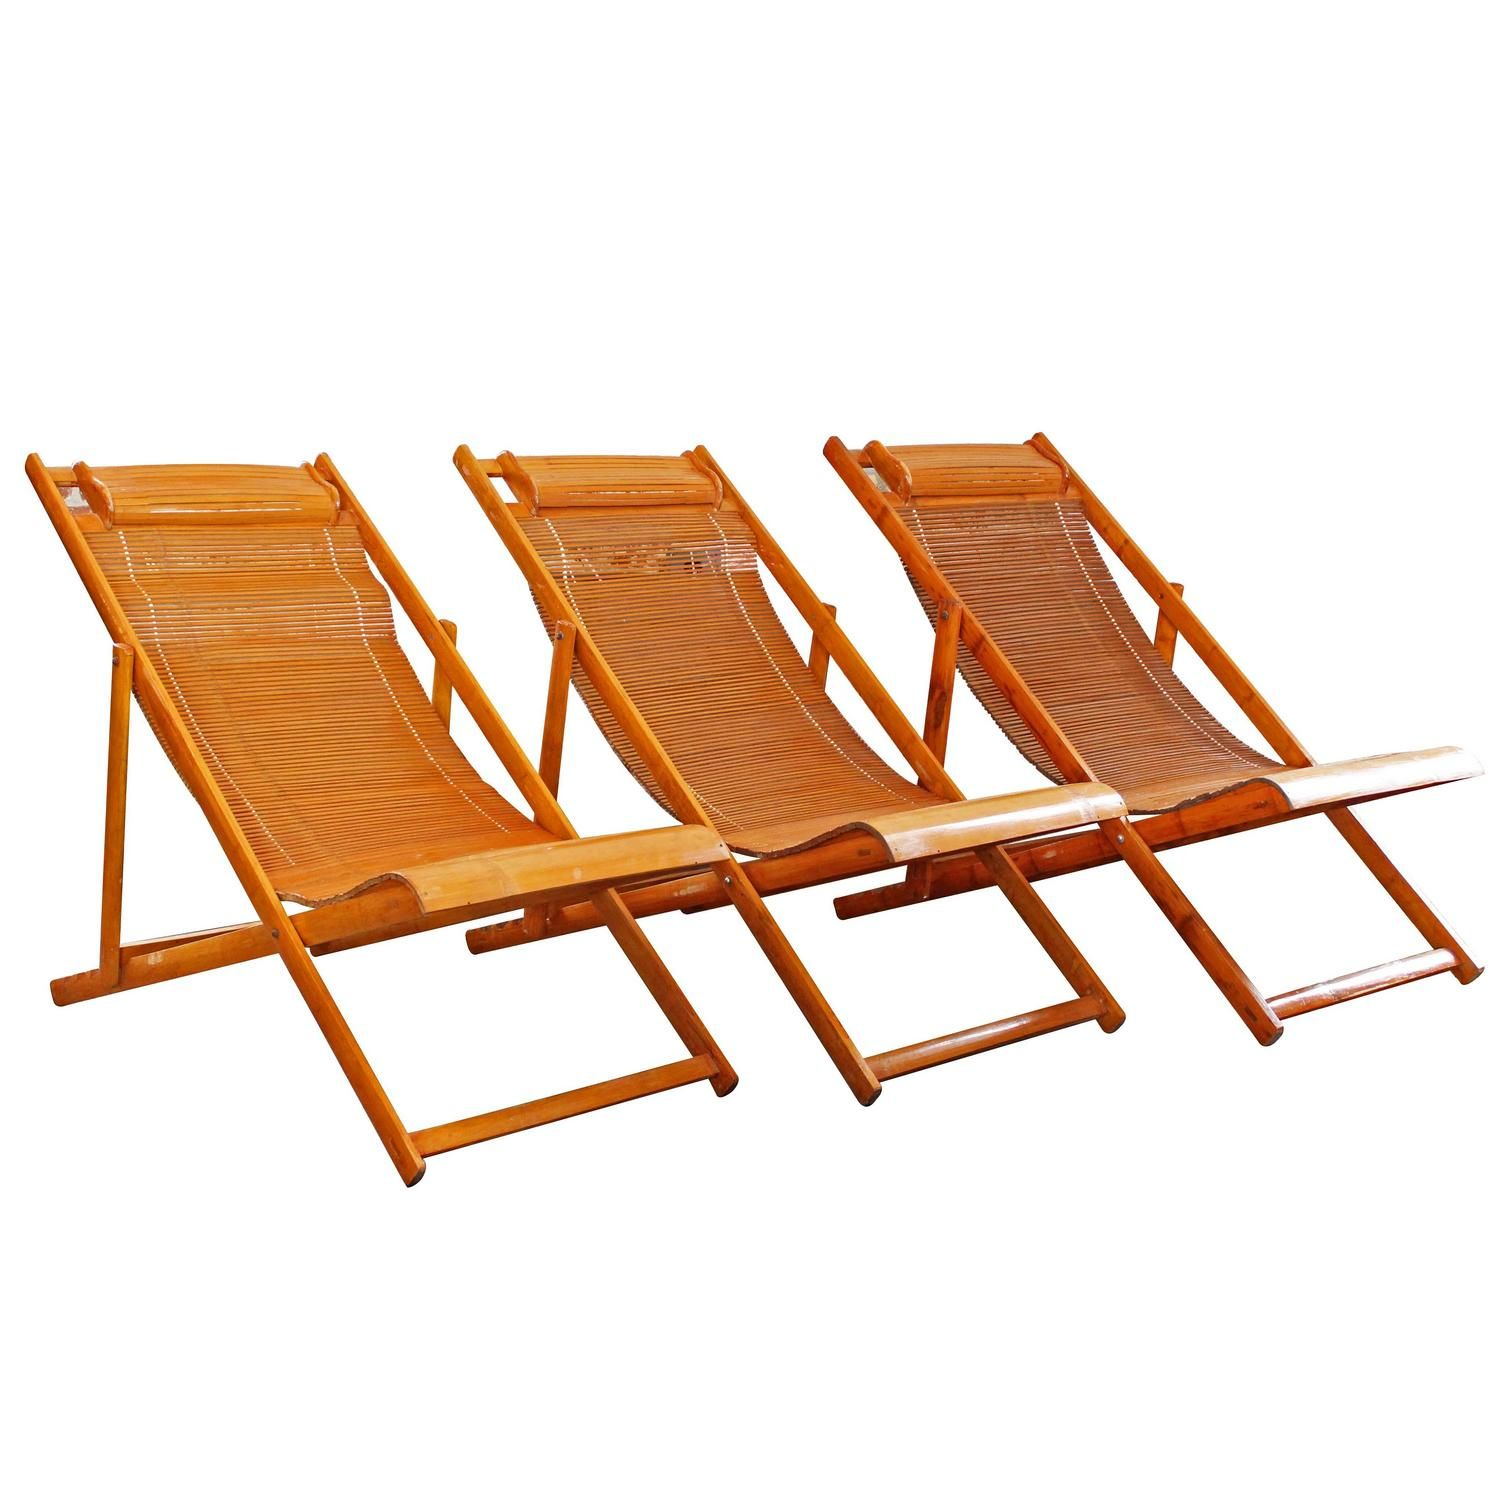 bamboo outdoor chairs 2 seater oak dining table and vintage wood japanese deck loungers fold up lounge